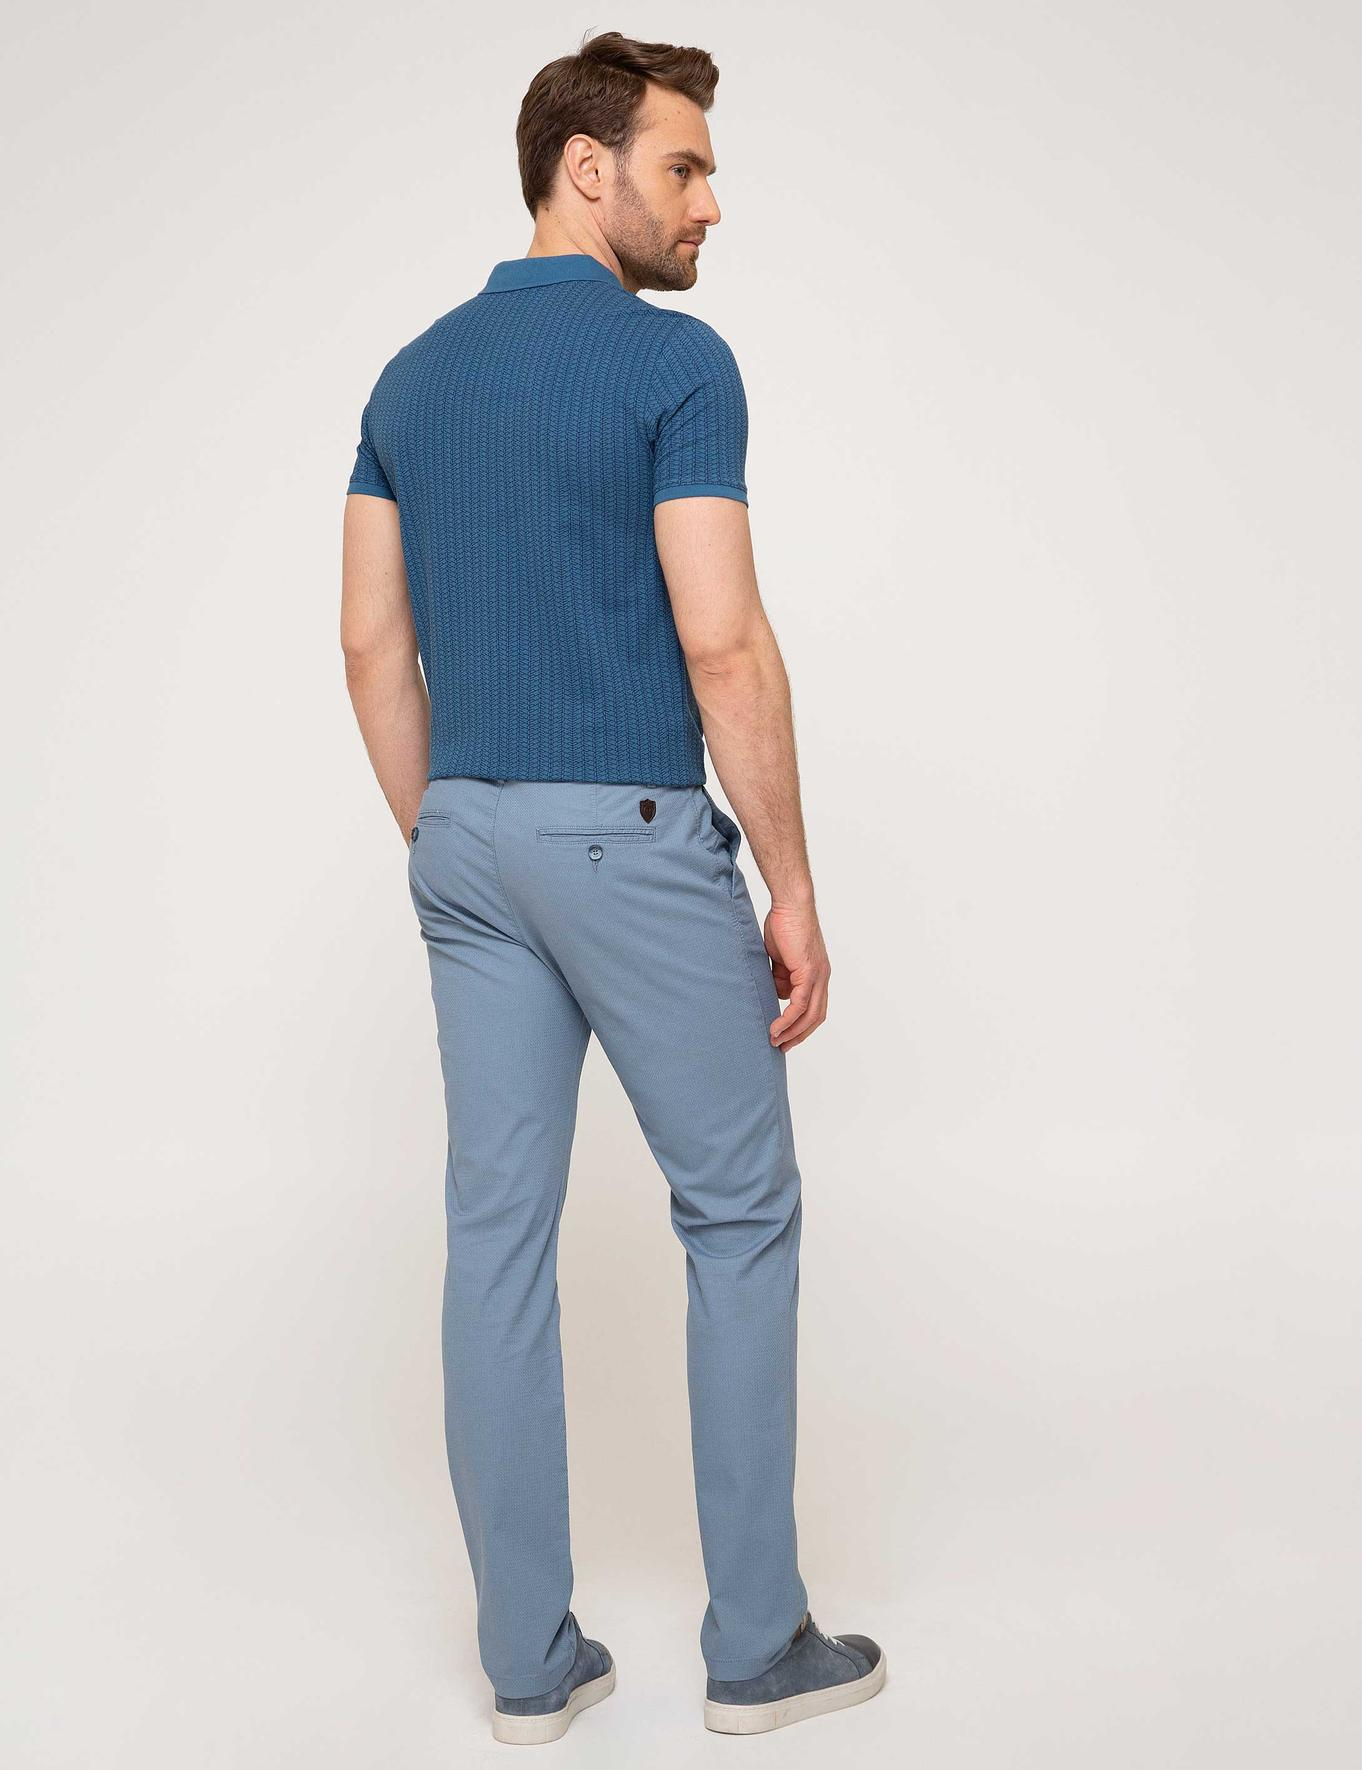 Koyu Mavi Slim Fit Chino Pantolon